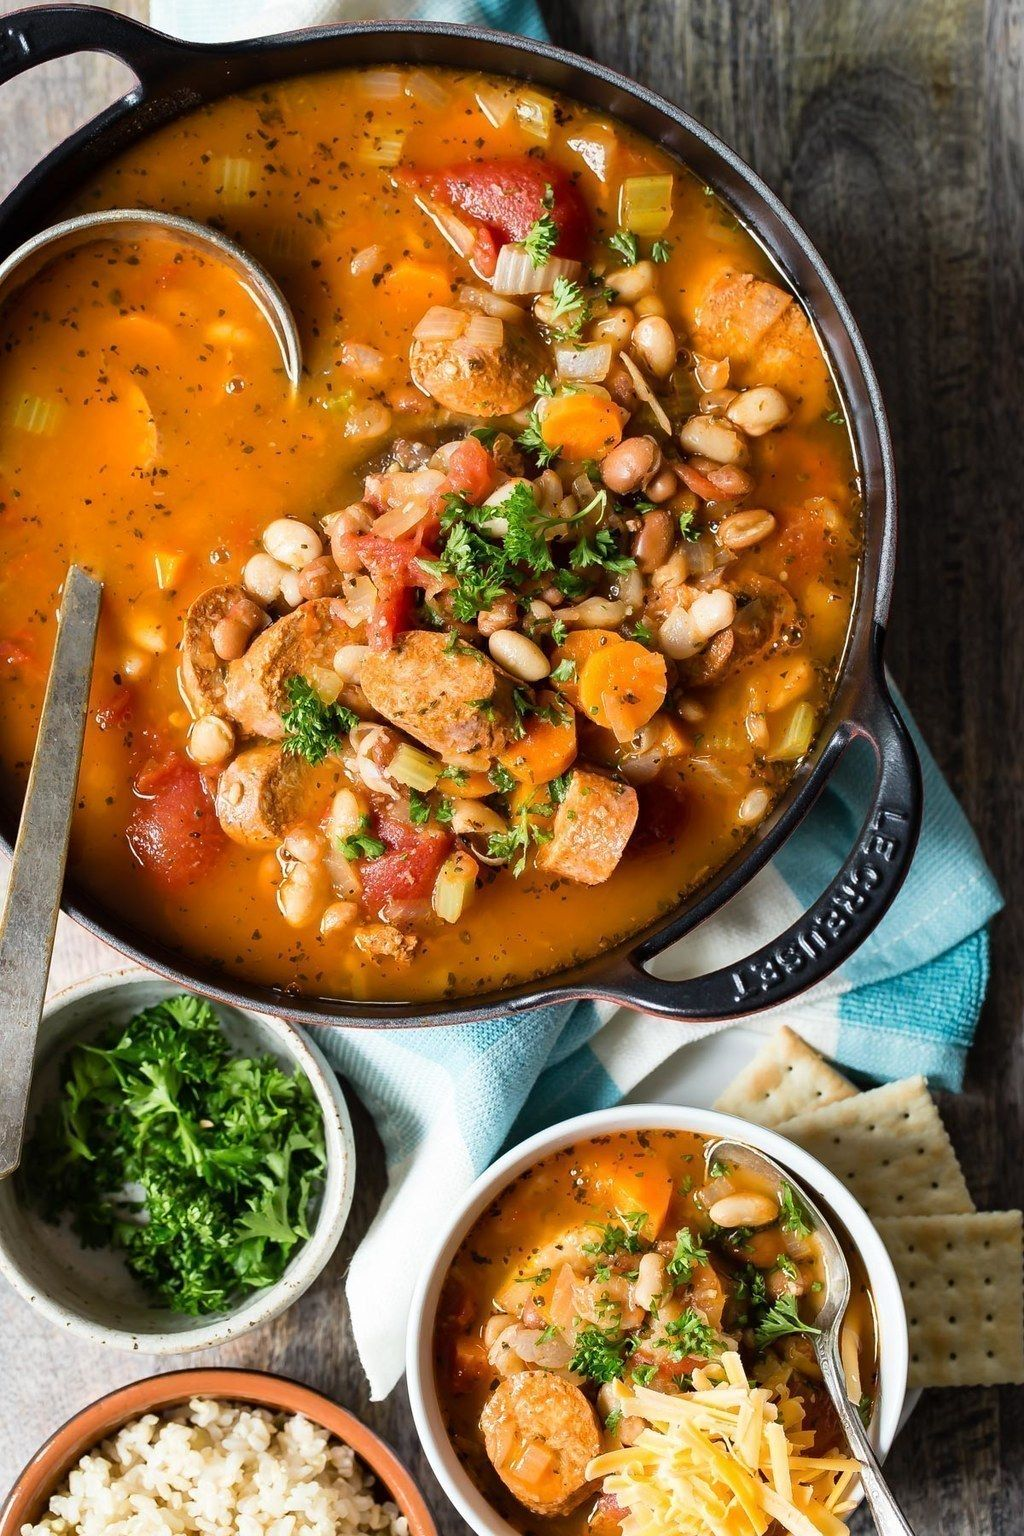 25 Vegan Weeknight Dinner Recipes With No Meat Or Dairy Eat Your Veggies Recette Faire Sa Cuisine Soupes